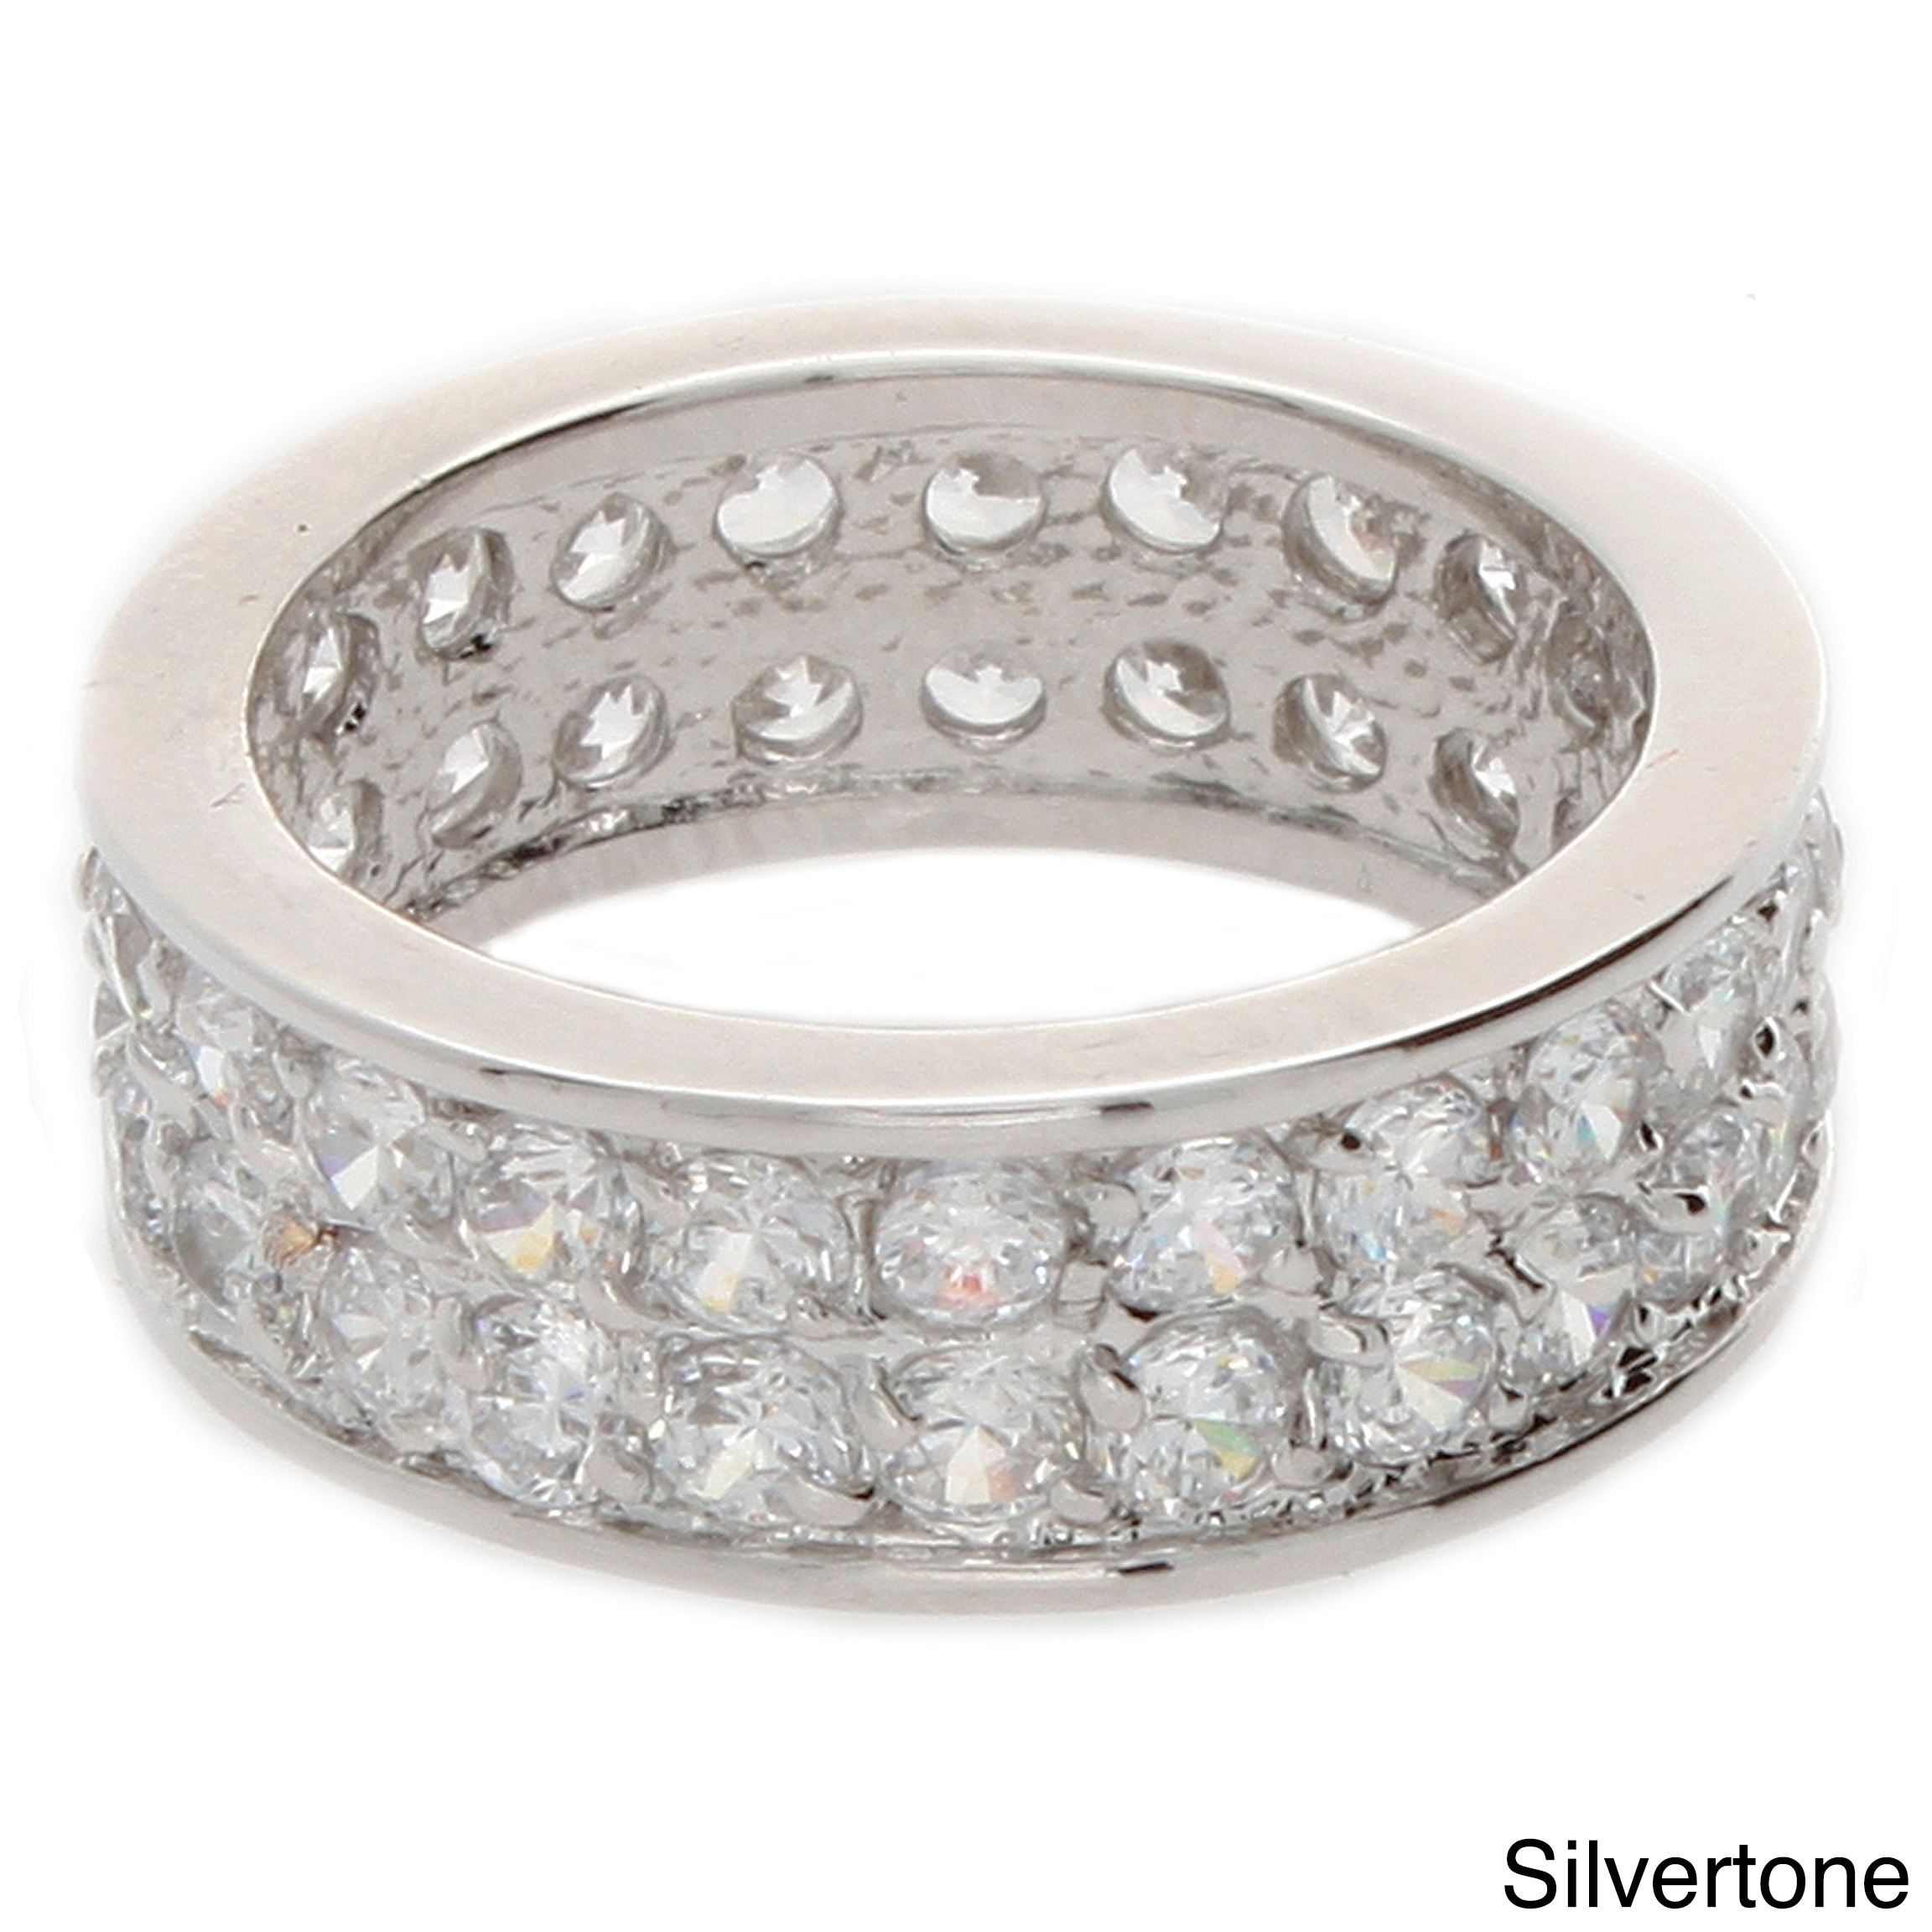 Overstock.com NEXTE Jewelry Silvertone Cubic Zirconia Double Row Eternity Band at Sears.com